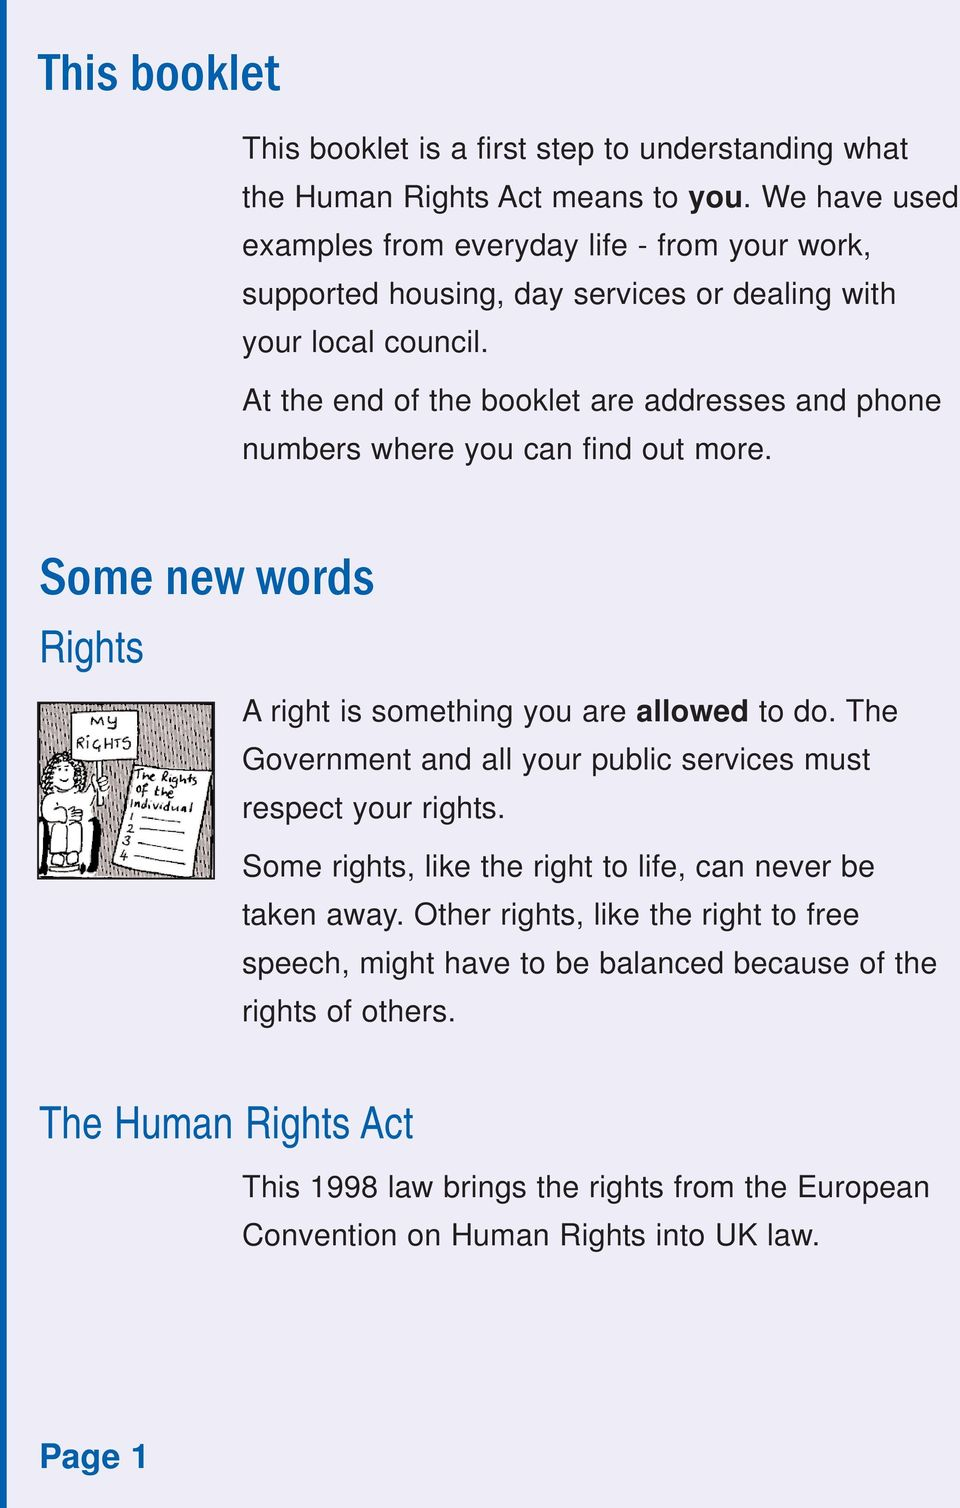 At the end of the booklet are addresses and phone numbers where you can find out more. Some new words Rights A right is something you are allowed to do.